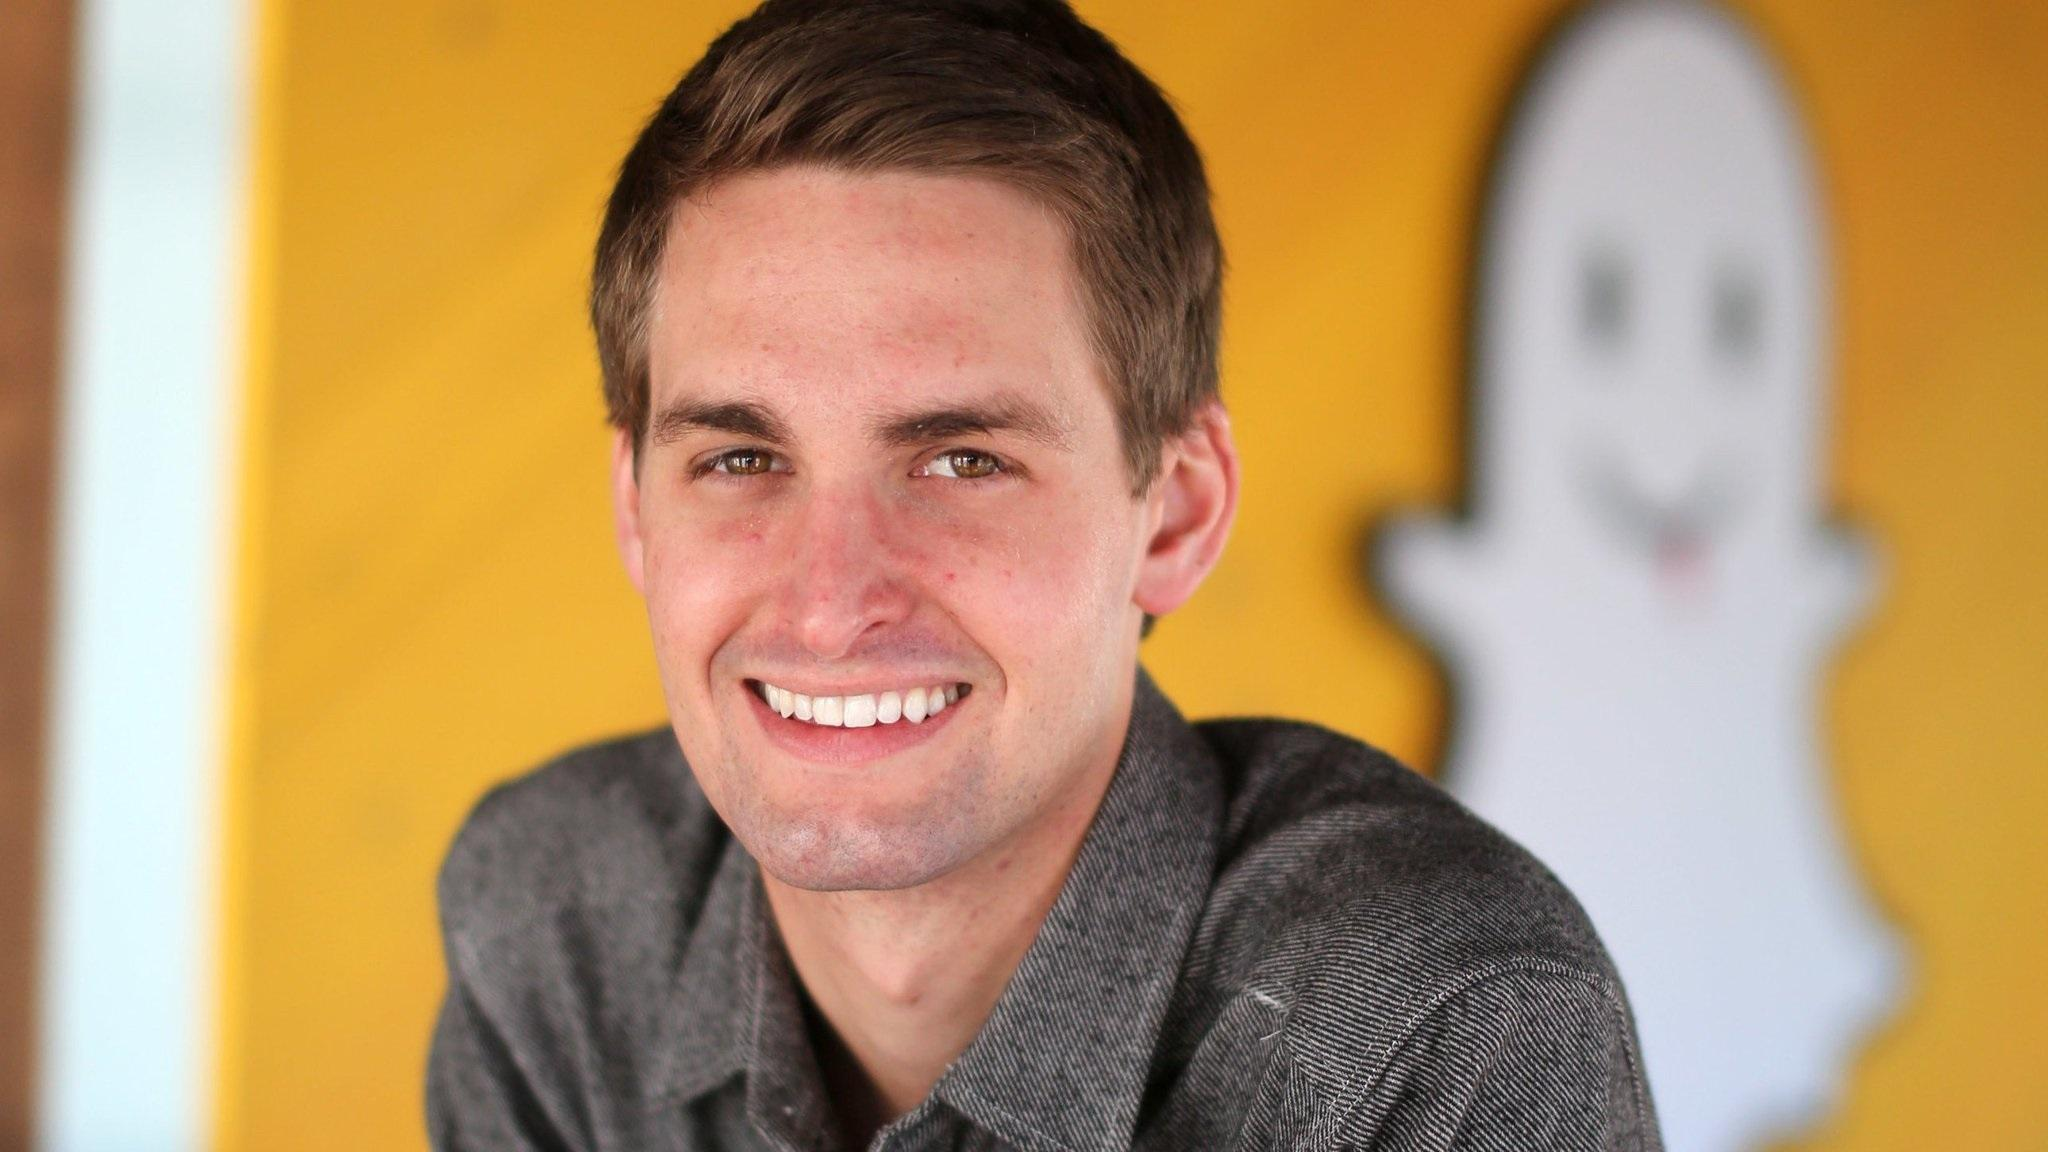 Will A BlackBerry Lawsuit End Snapchat?